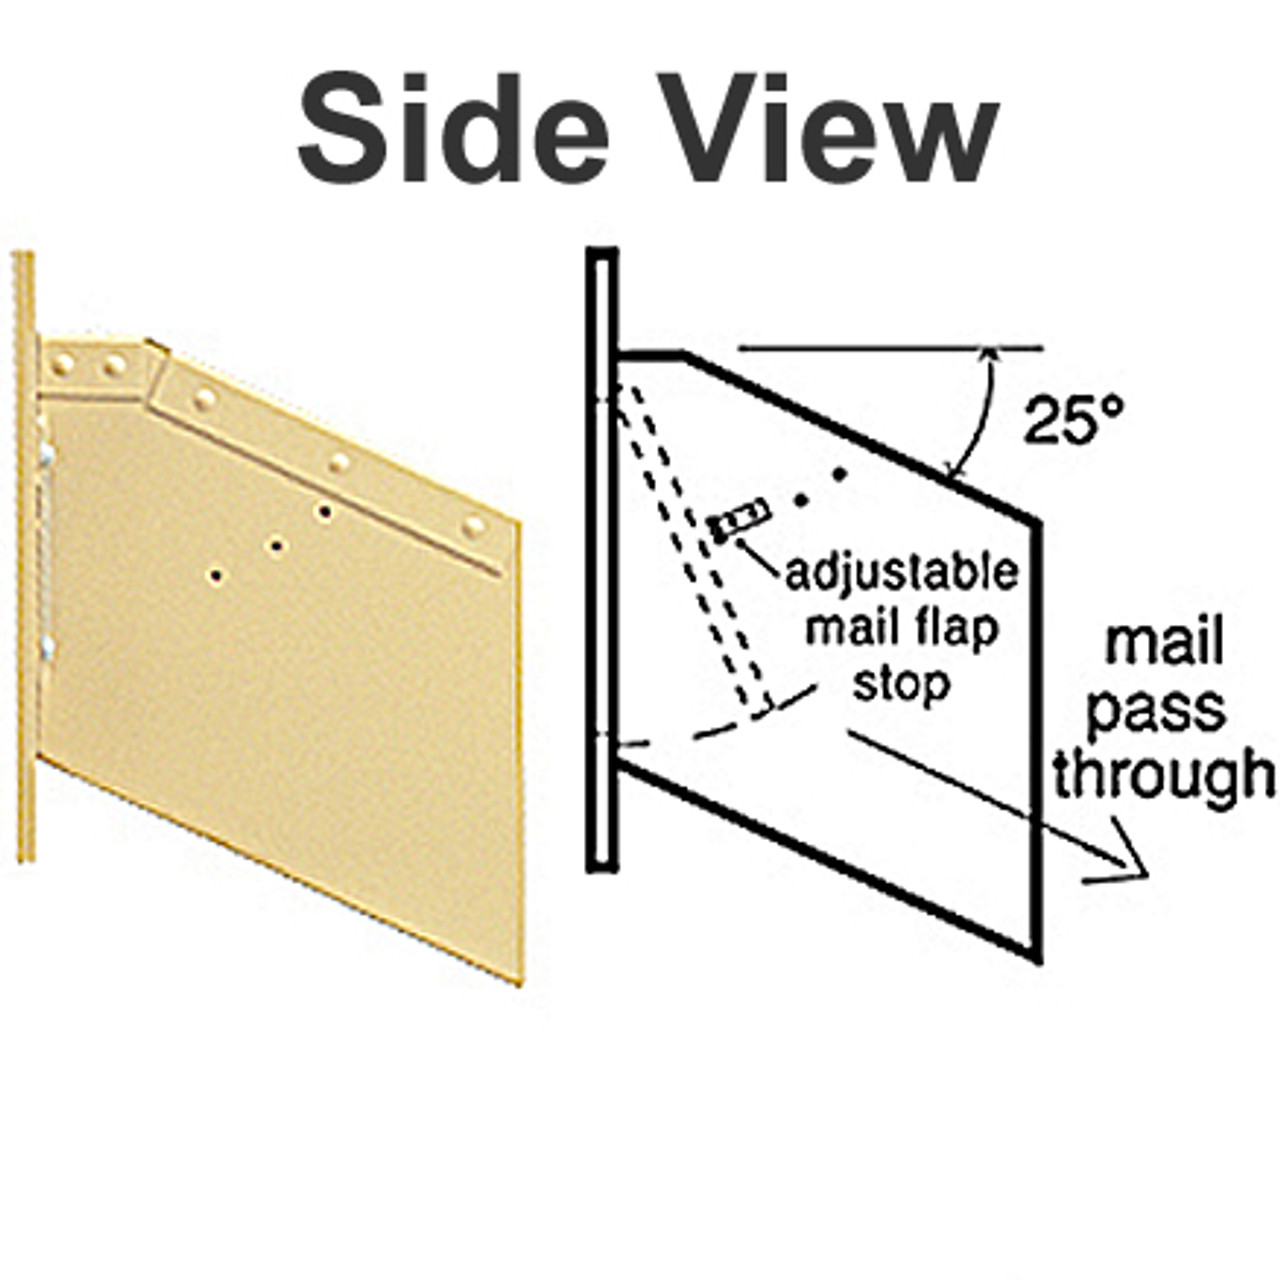 Wall Mail Drop Slot S2255 side view